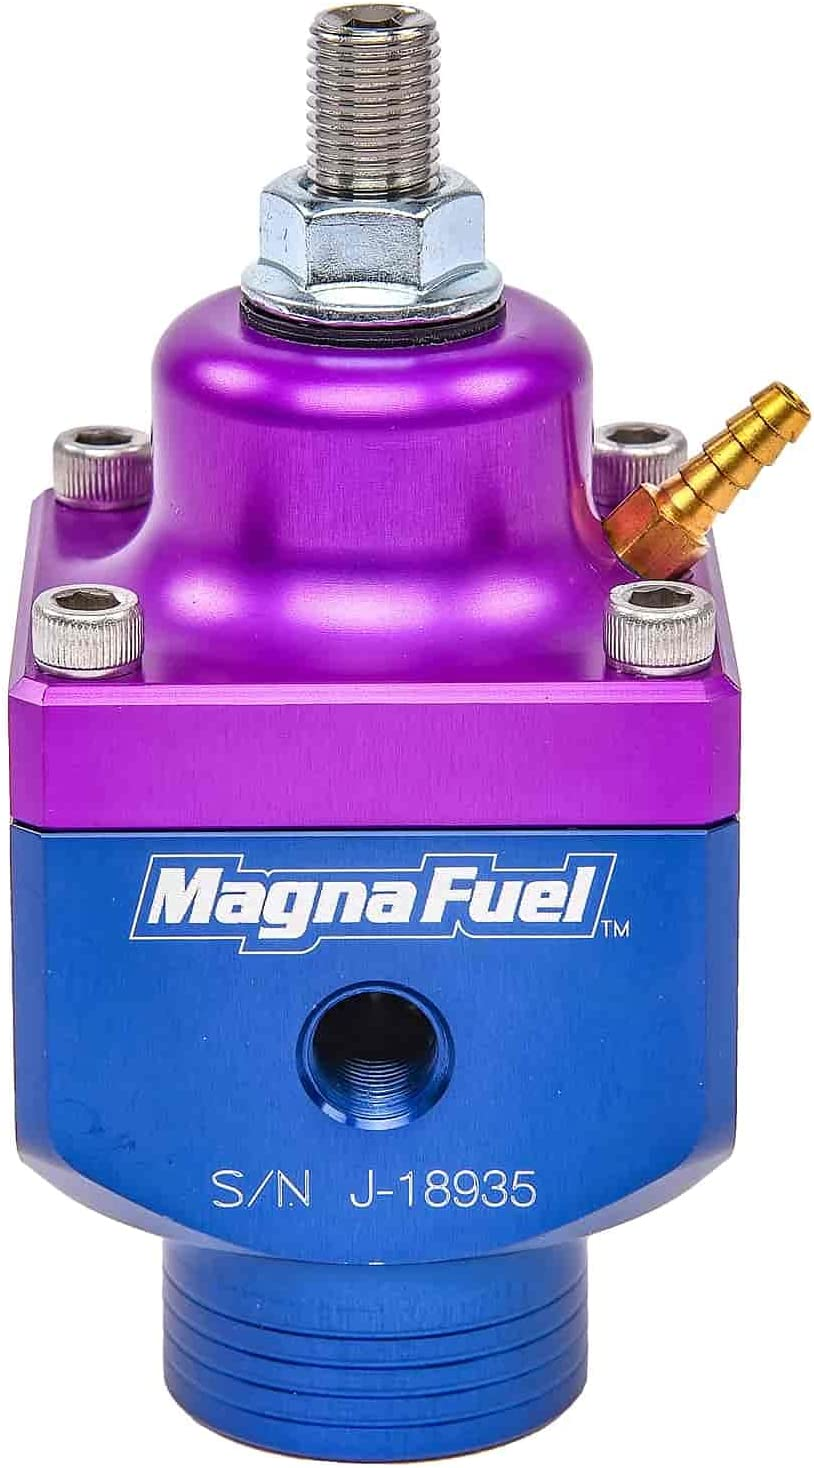 MagnaFuel MP-9833-B 2-Port Max 73% OFF Regulator Boost with Reference 5% OFF